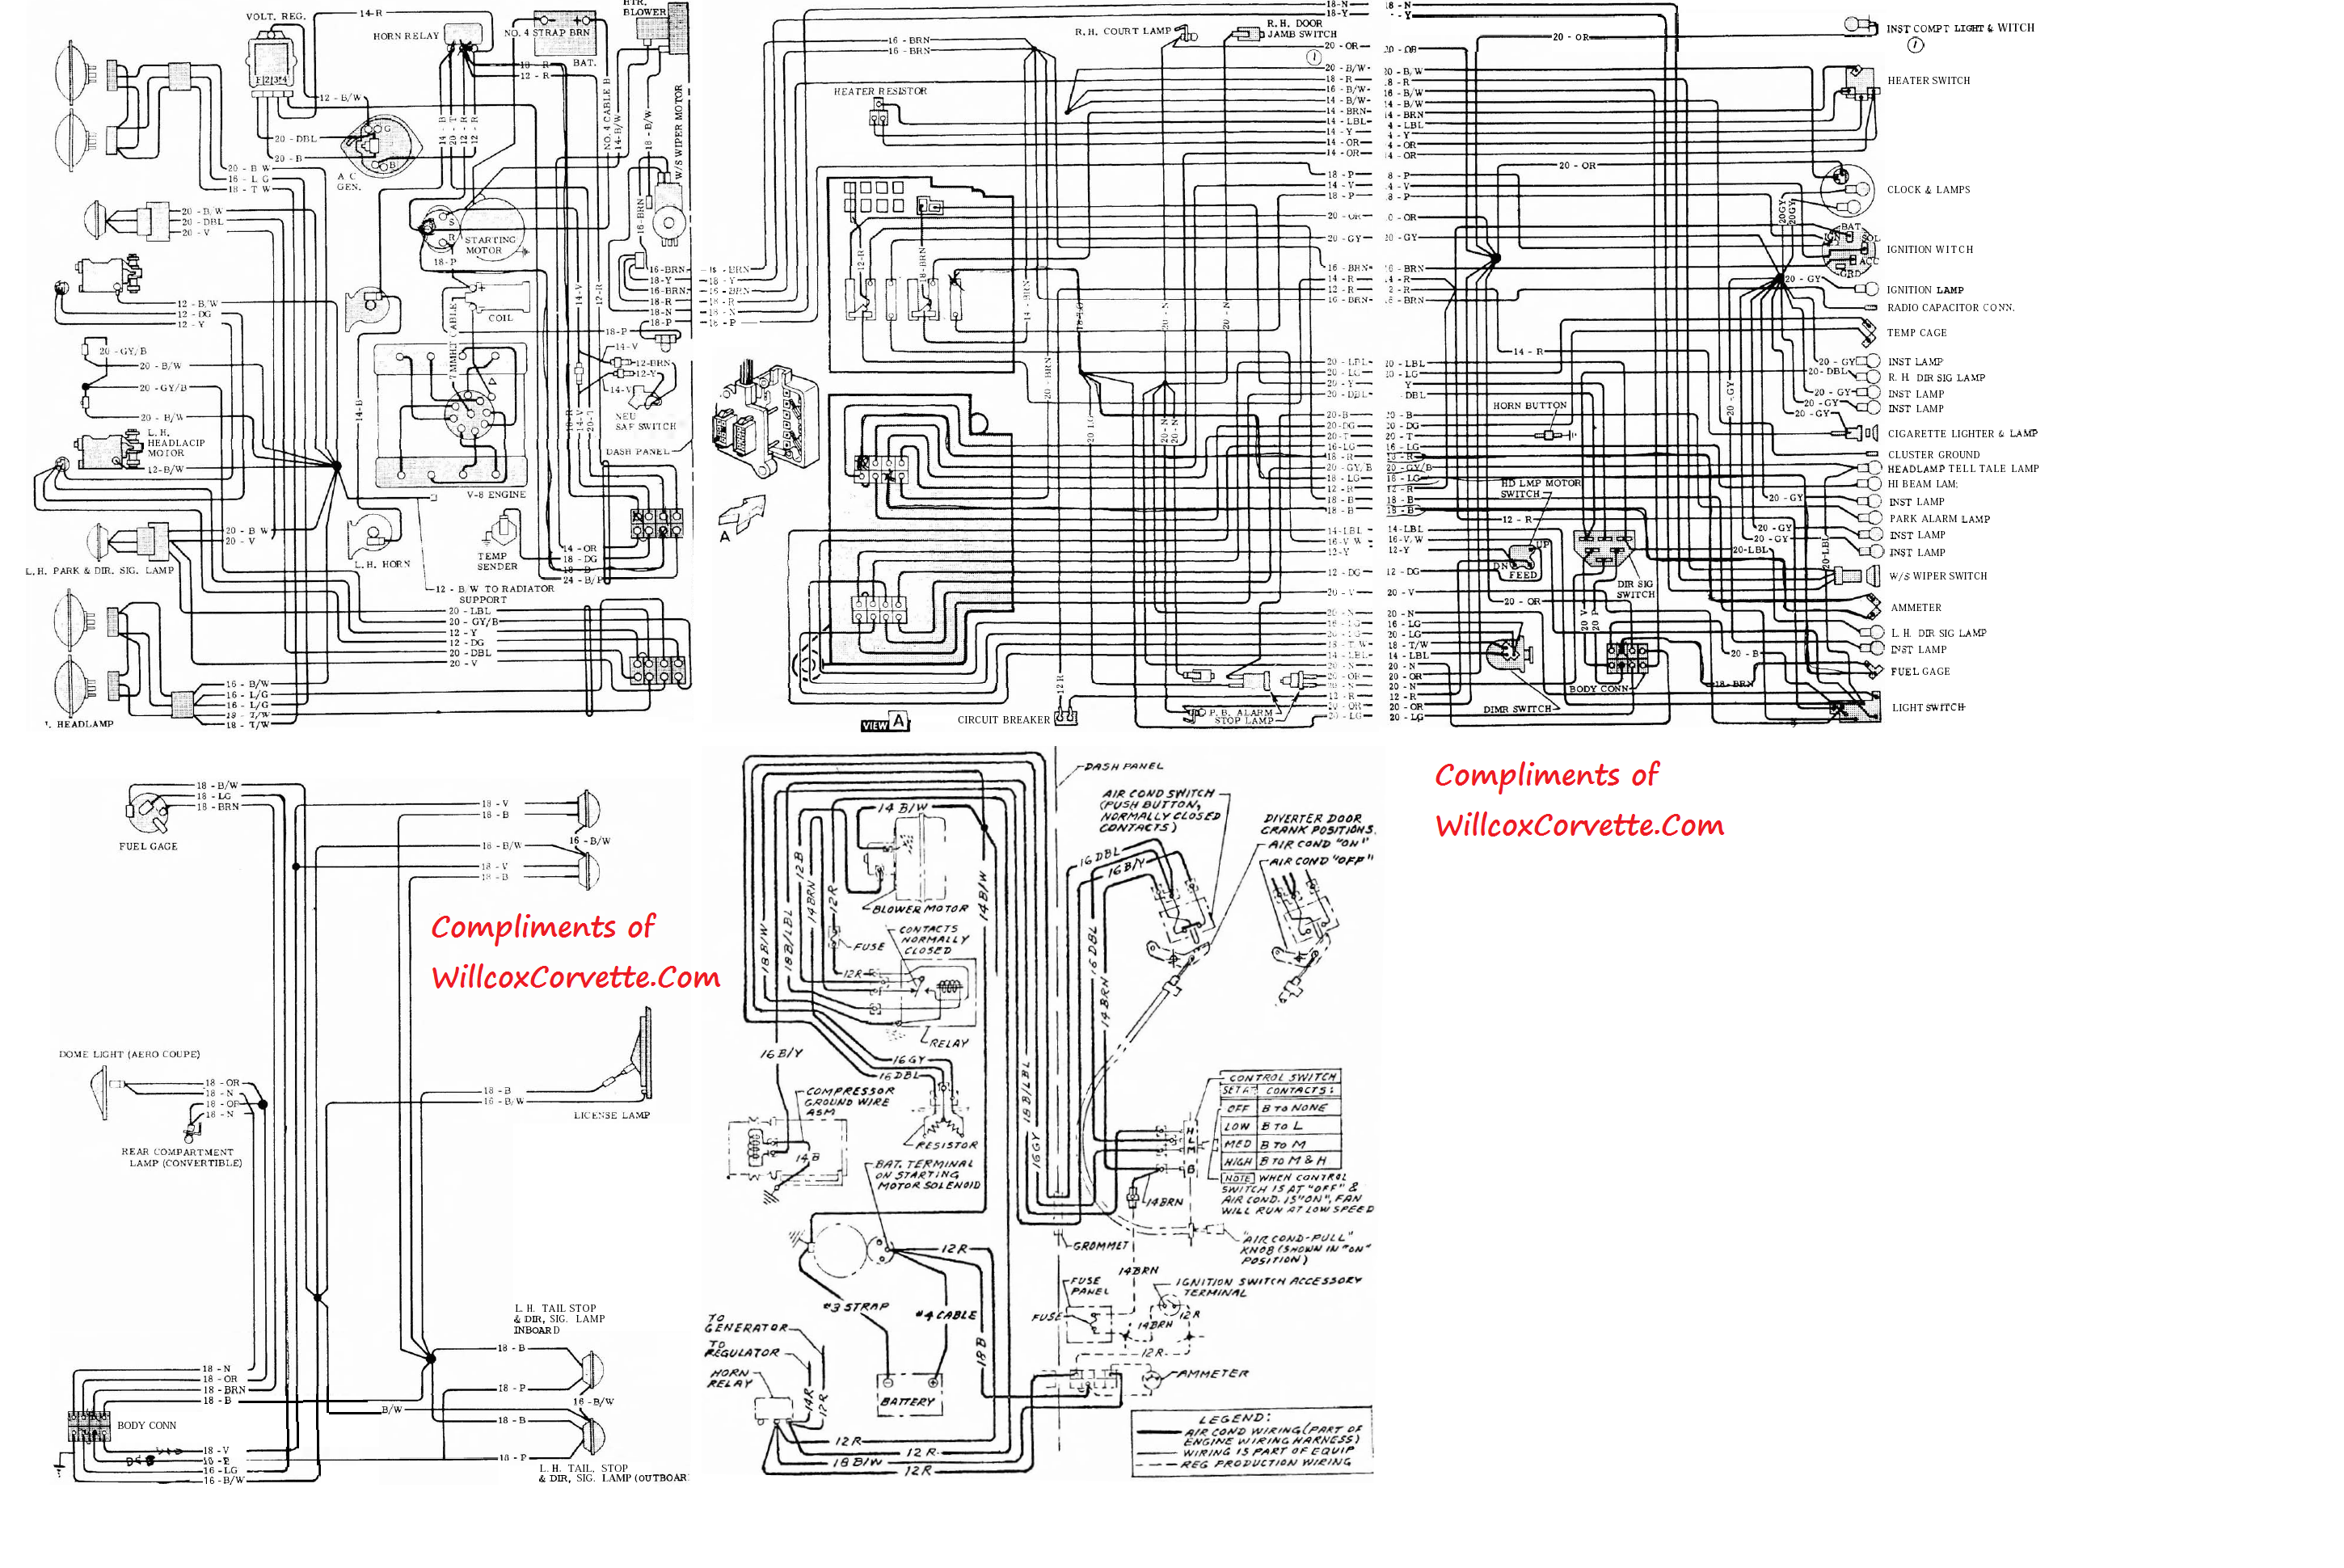 A79F2BC2 1988 Ae92 Toyota Corolla Wiring Diagram | Digital Resources4.2.7.1.2.8.6.dba.matel.hr